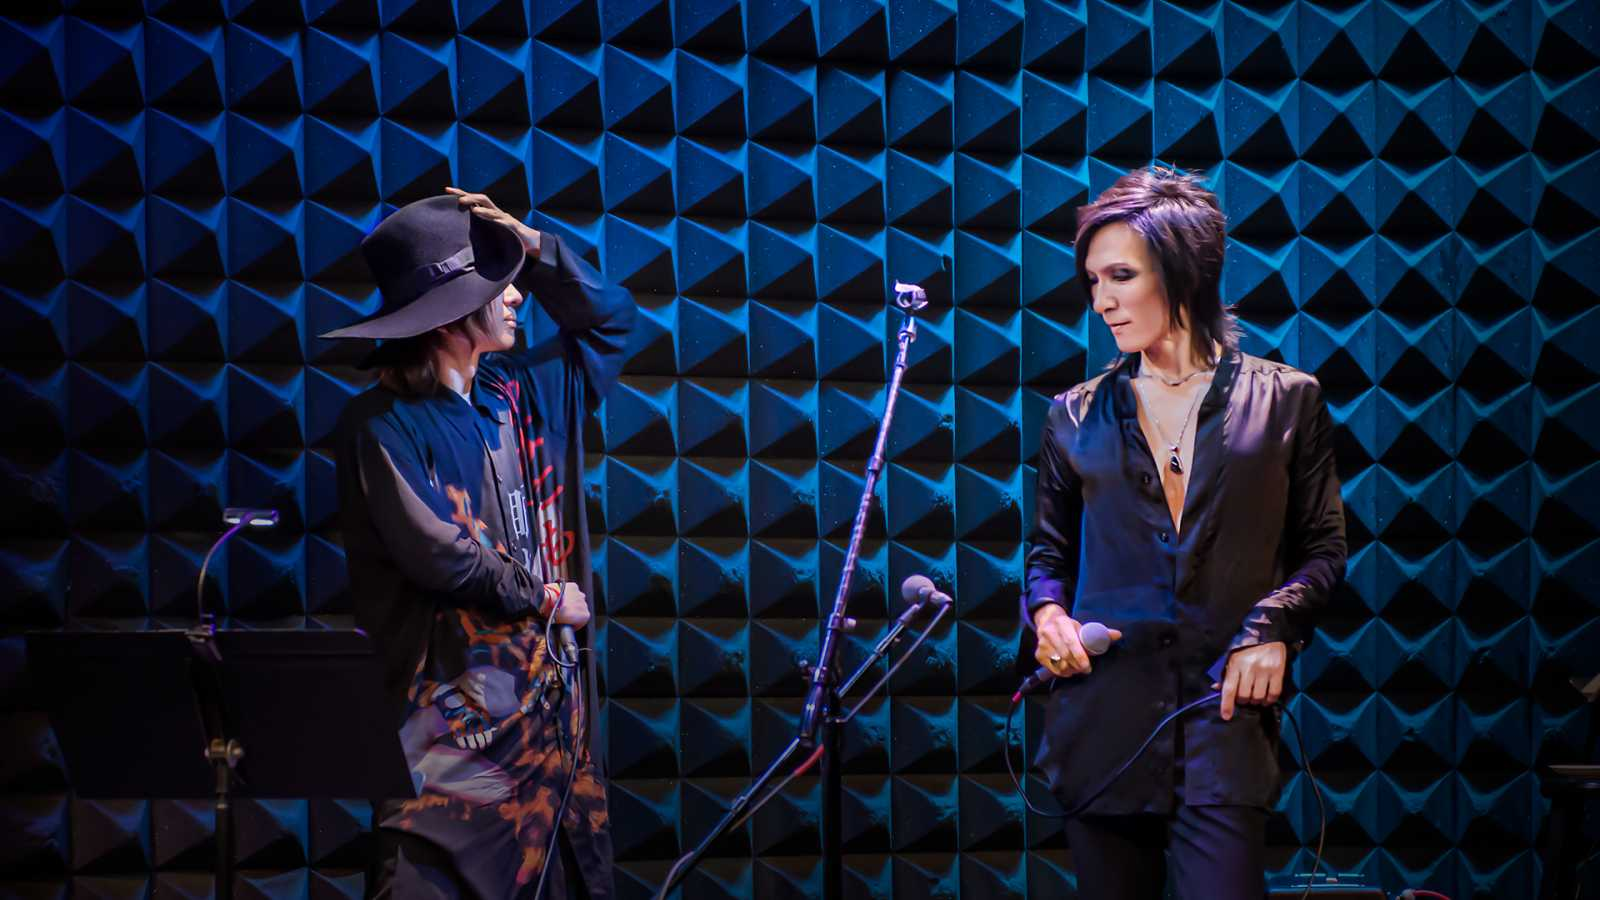 """MORRIE's Solitude & KIYOHARU's Elegy"" at Joe's Pub, New York City © Tregallery"